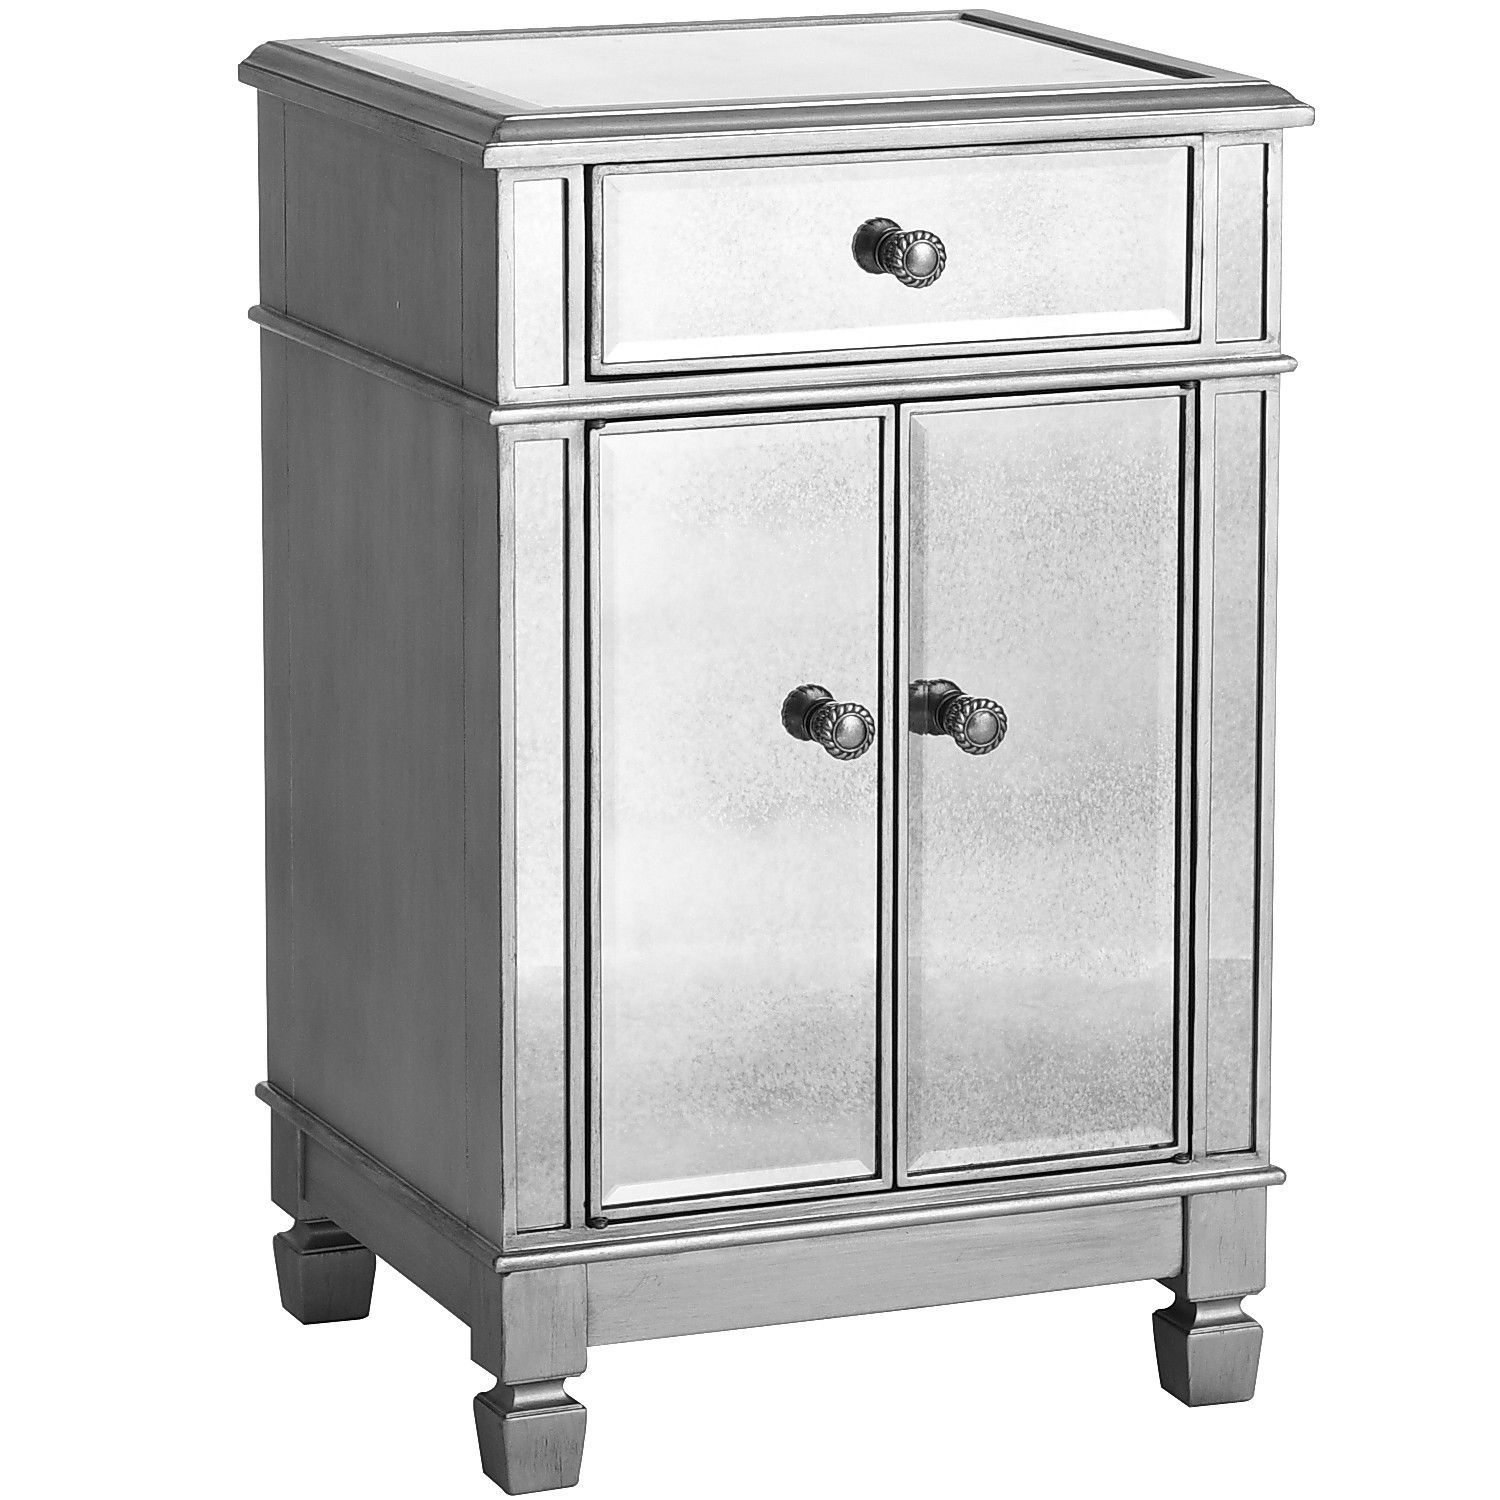 hayworth mirrored furniture. Hayworth Mirrored Bedside Chest - Silver | Pier 1 Imports Furniture